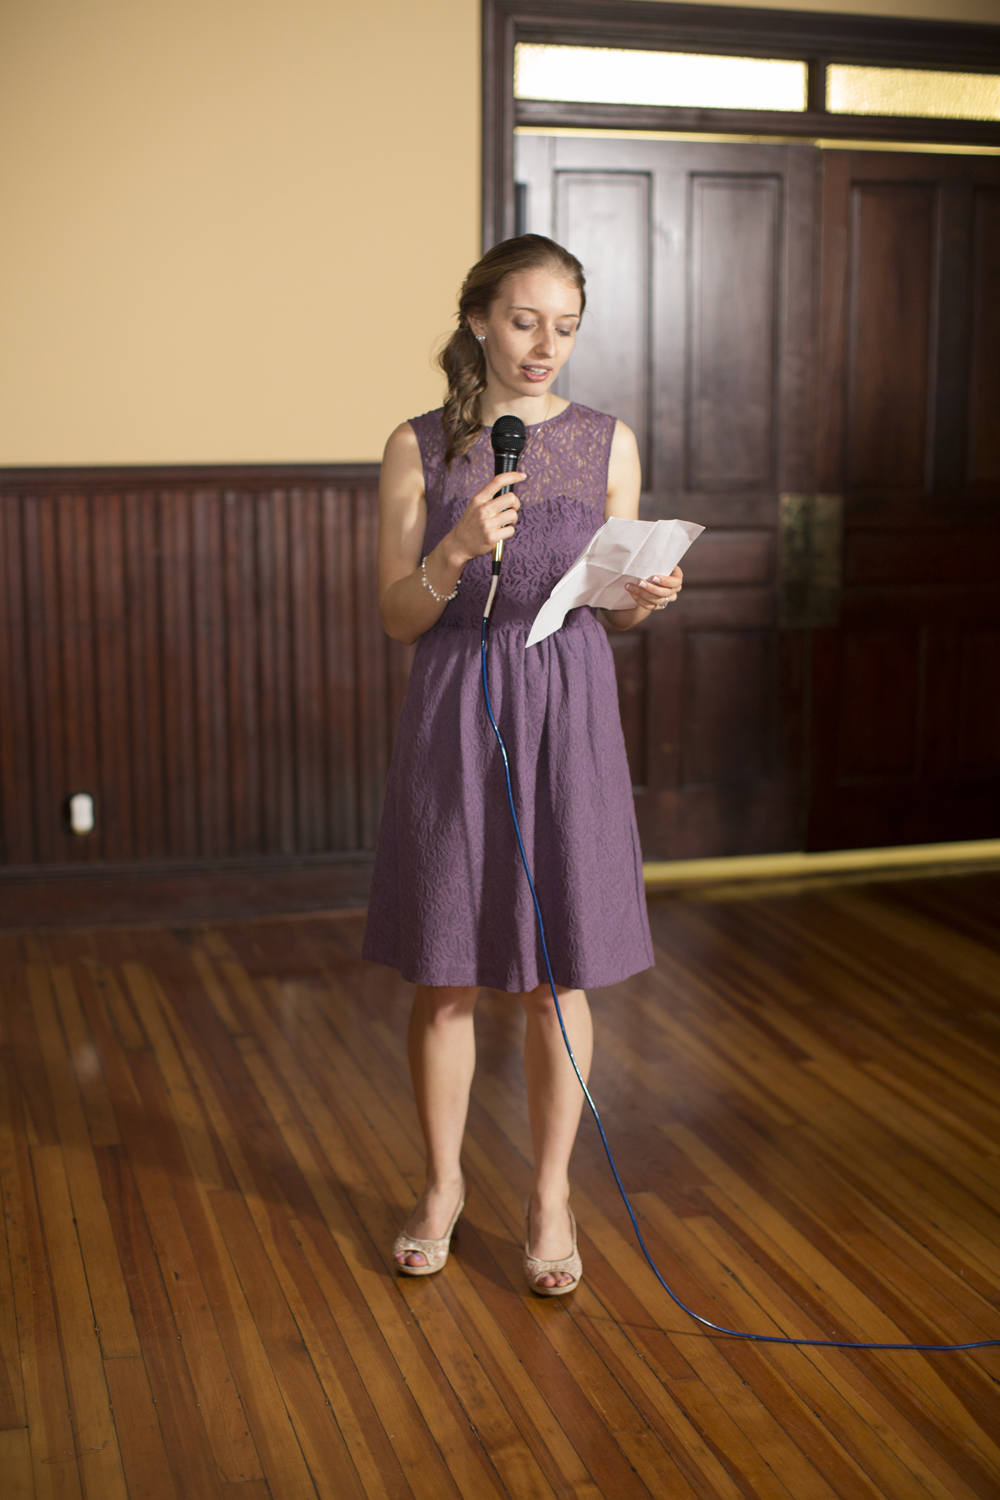 Maid of honor in lavender dress wedding speech